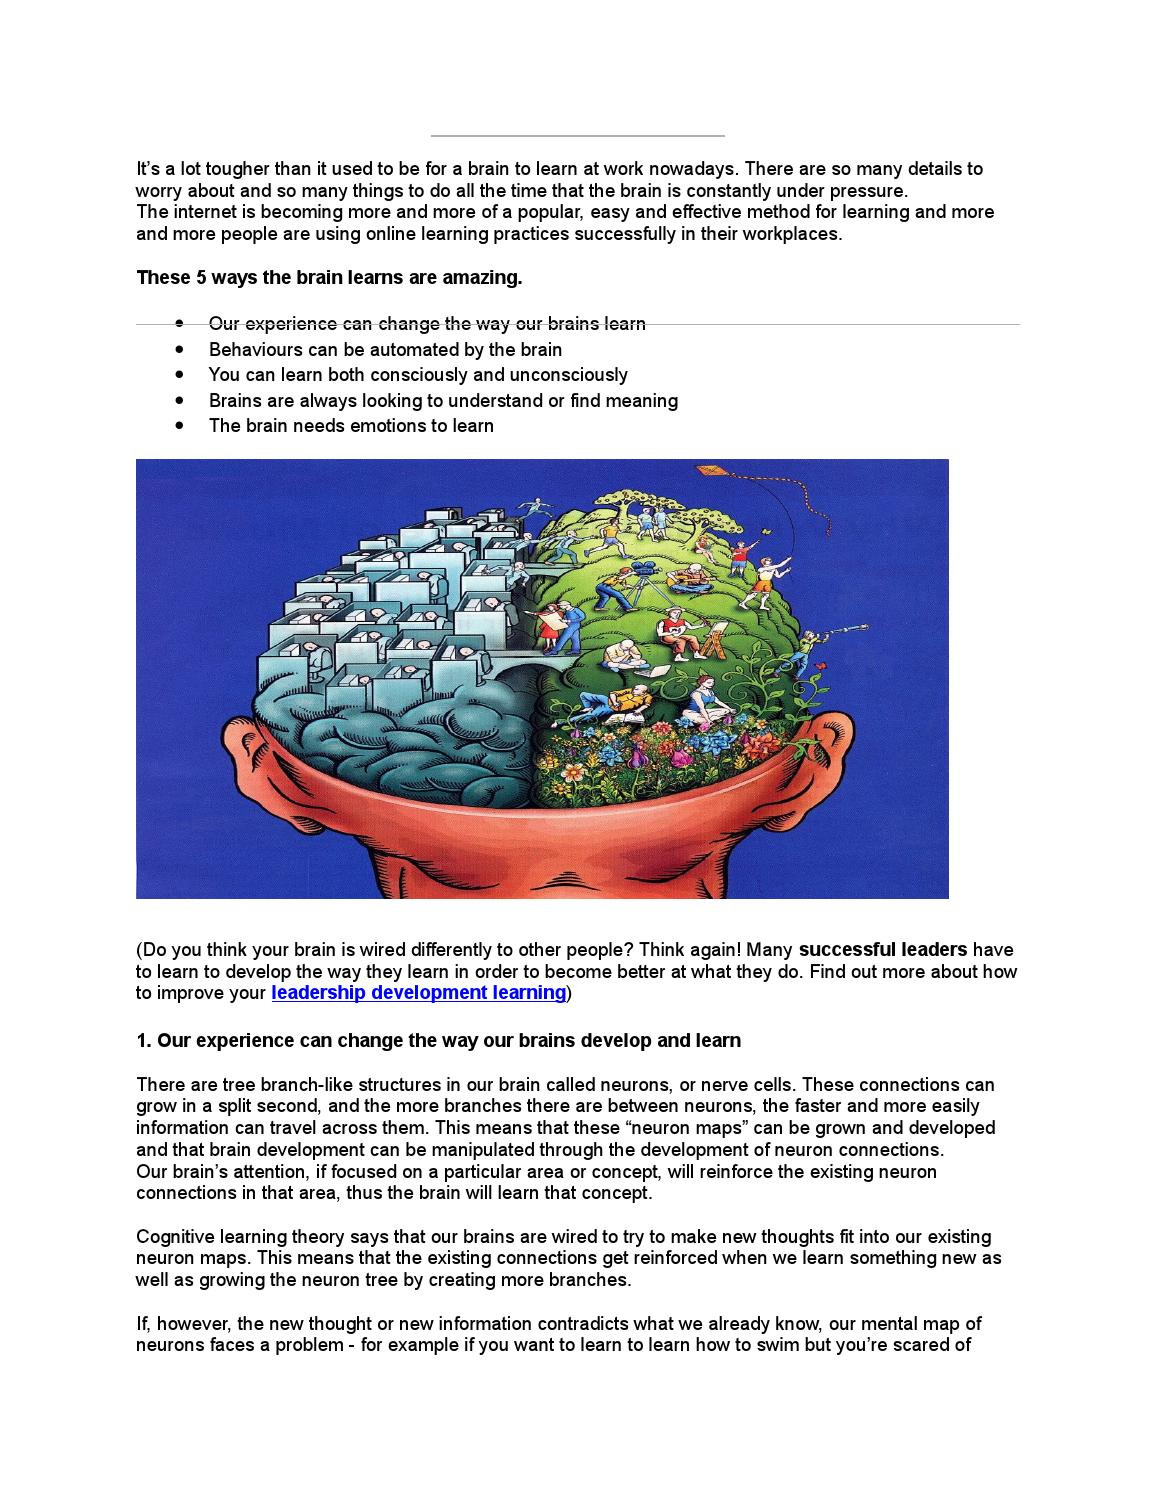 Our brain learns in several ways by Mantlemarketing - issuu